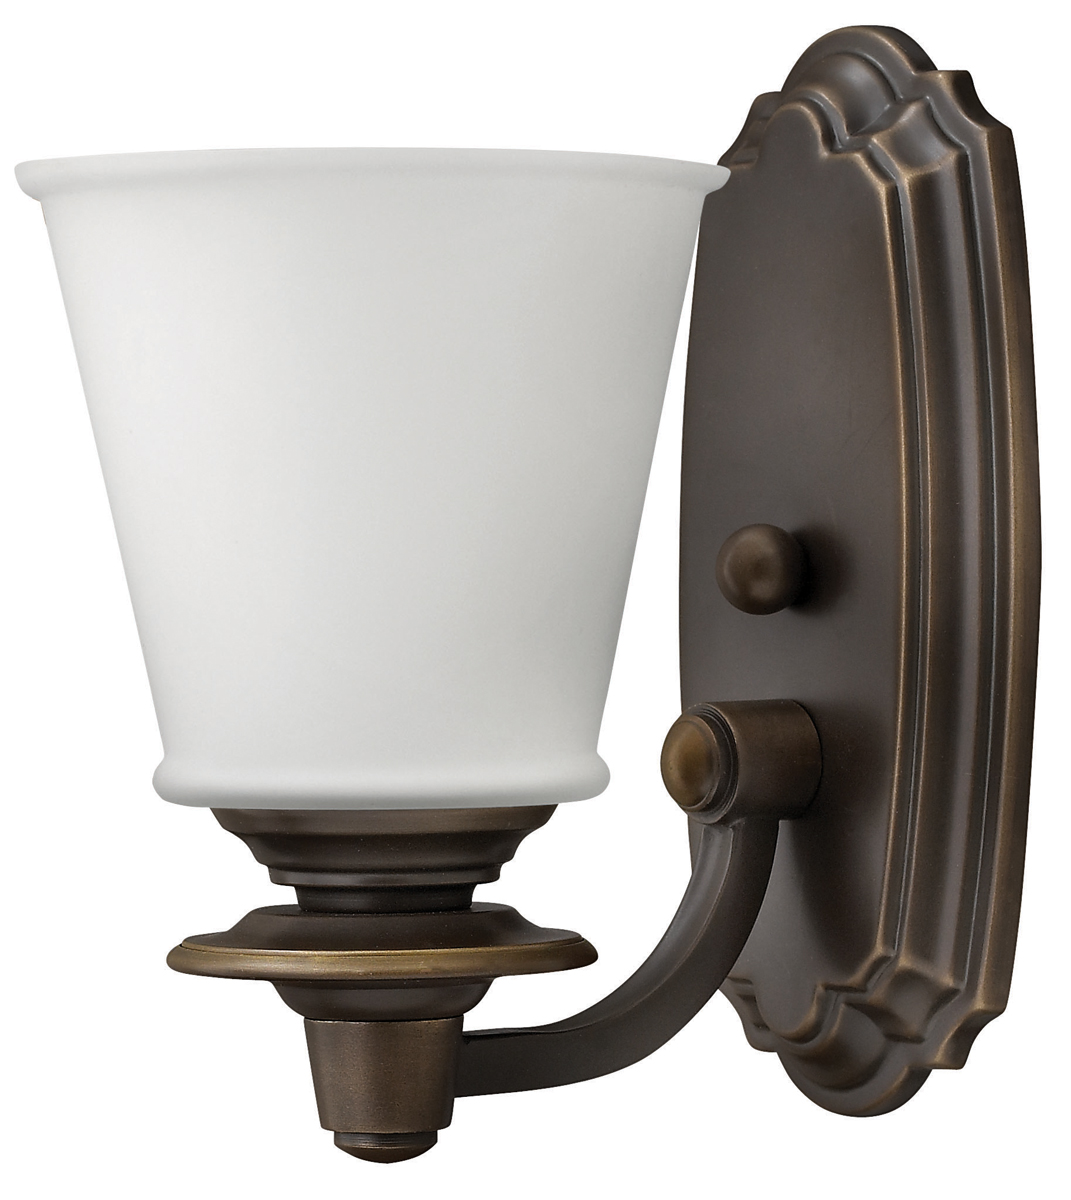 Hinkley Bathroom Wall Sconces : Hinkley Lighting (54260OB) Plymouth Single Light Bathroom Vanity Fixture in Olde Bronze